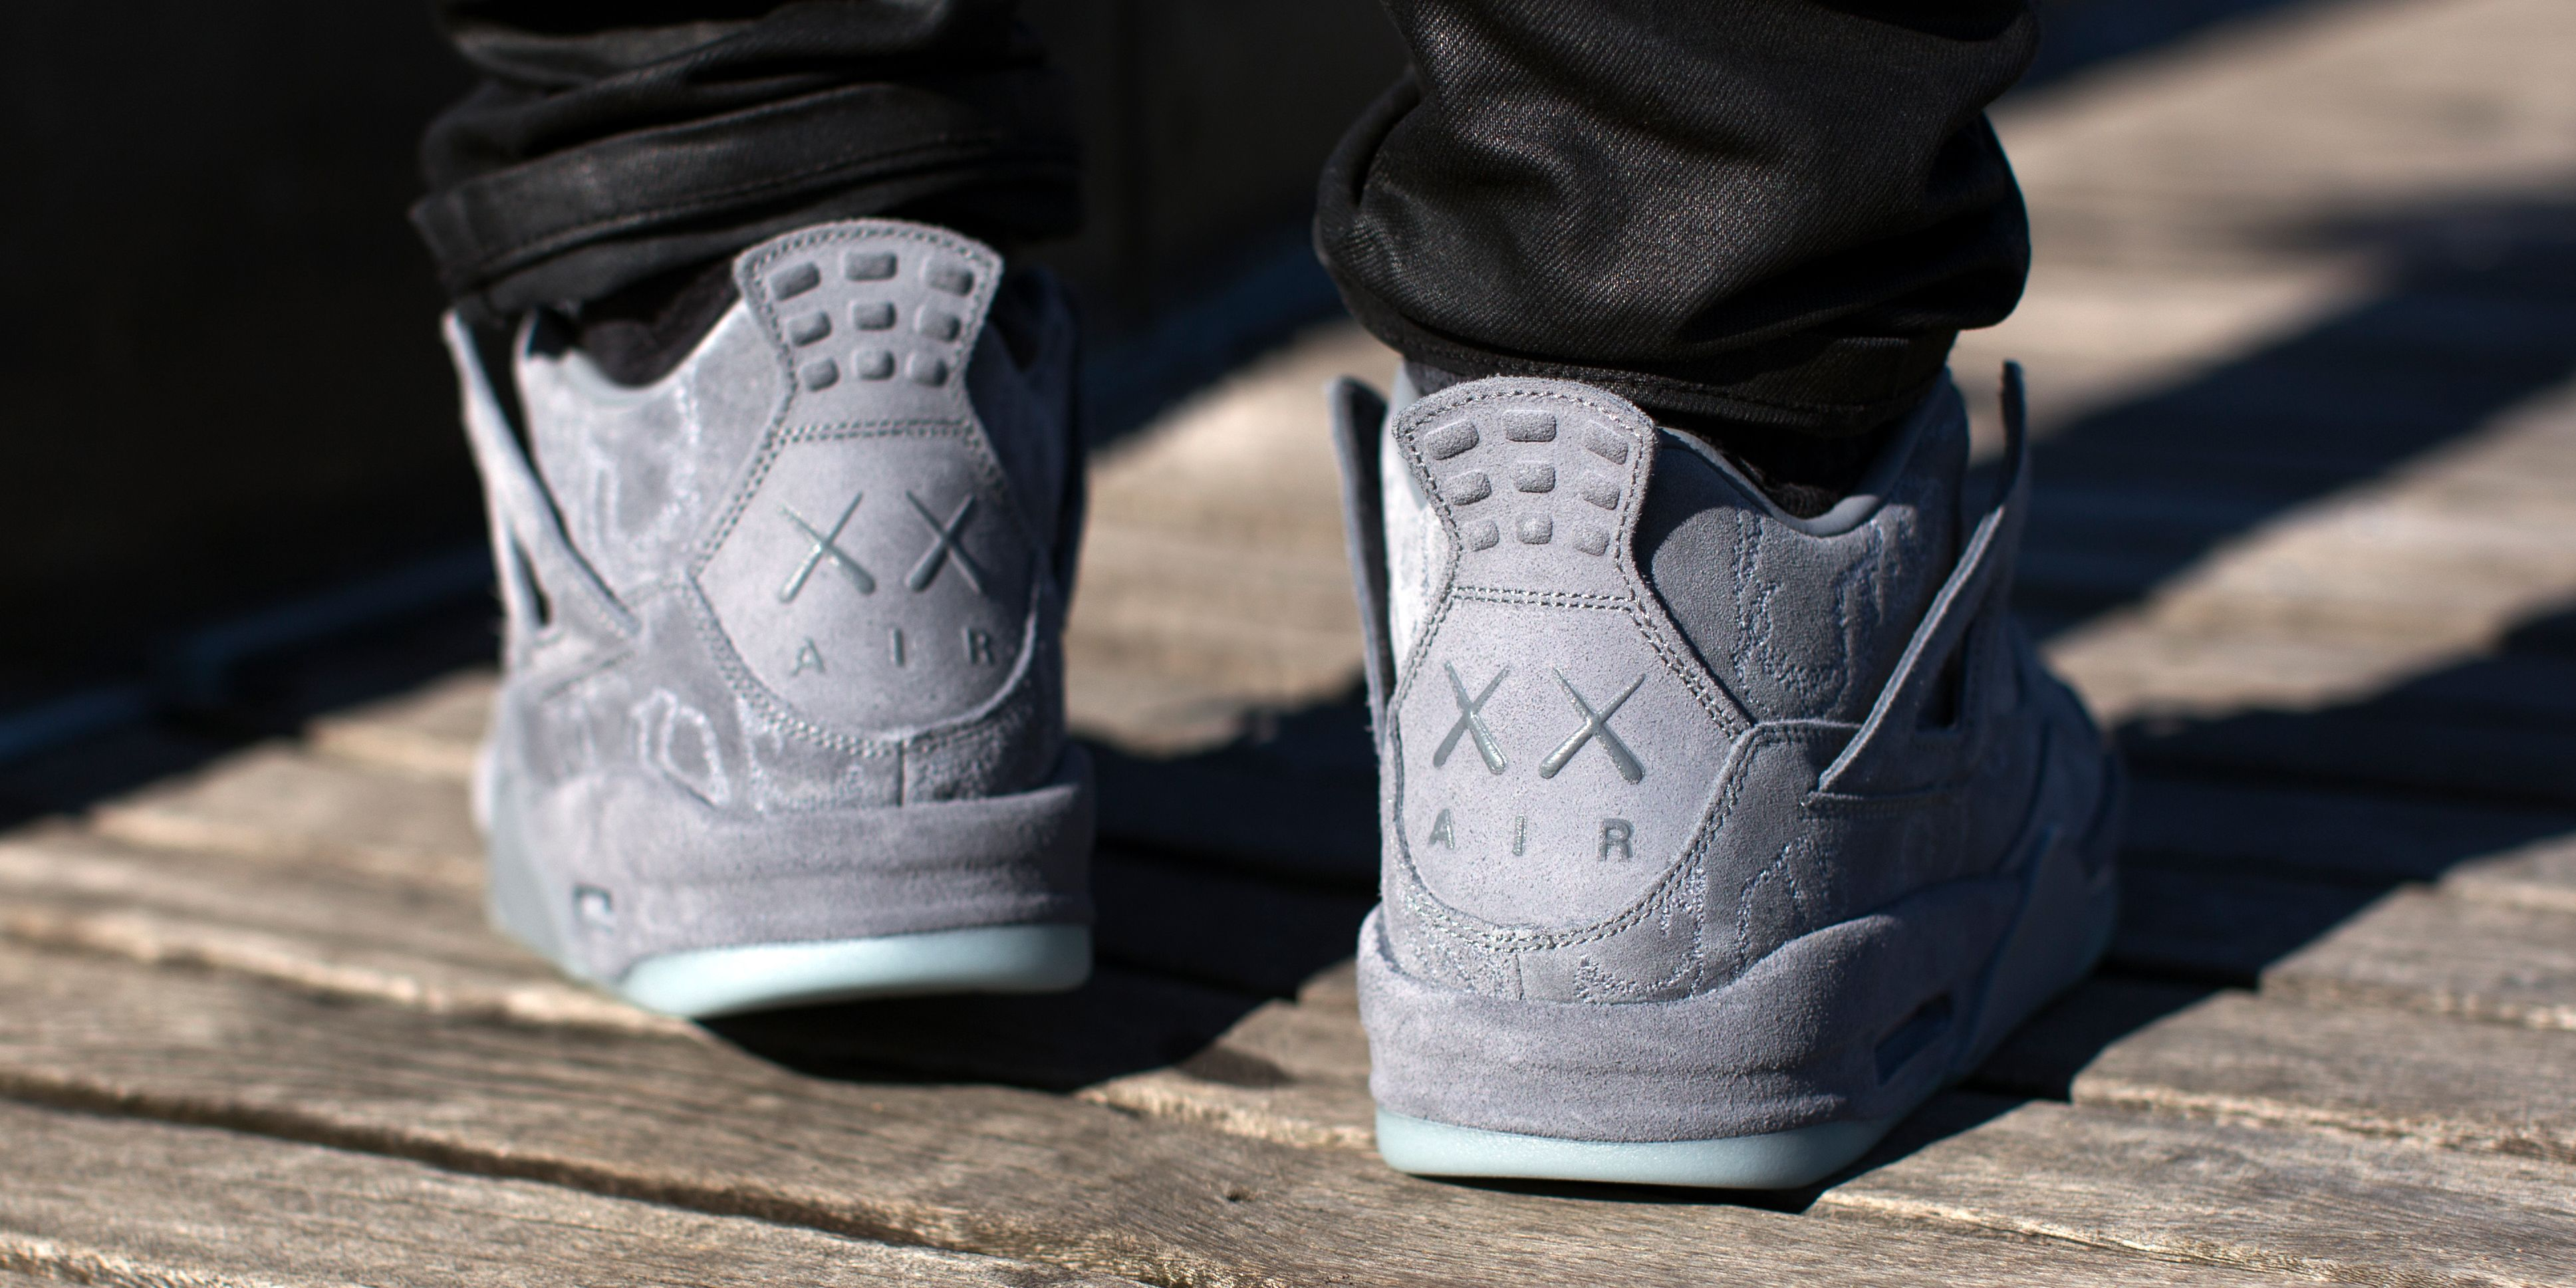 b7e4b0632a3d23 KAWS and Jordan Are Releasing a Game-Changing Sneaker